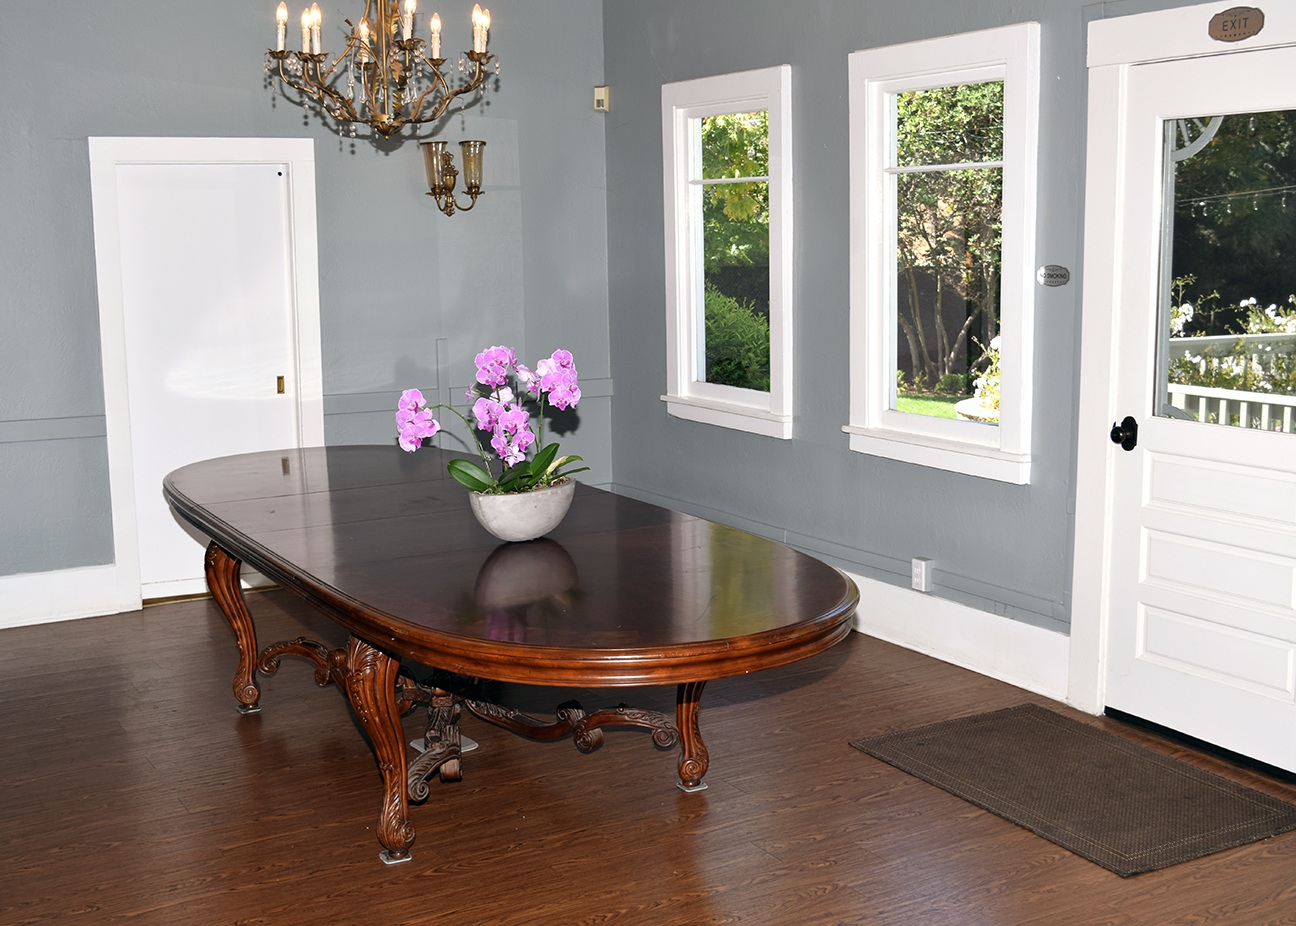 Interior: Dining Room Table